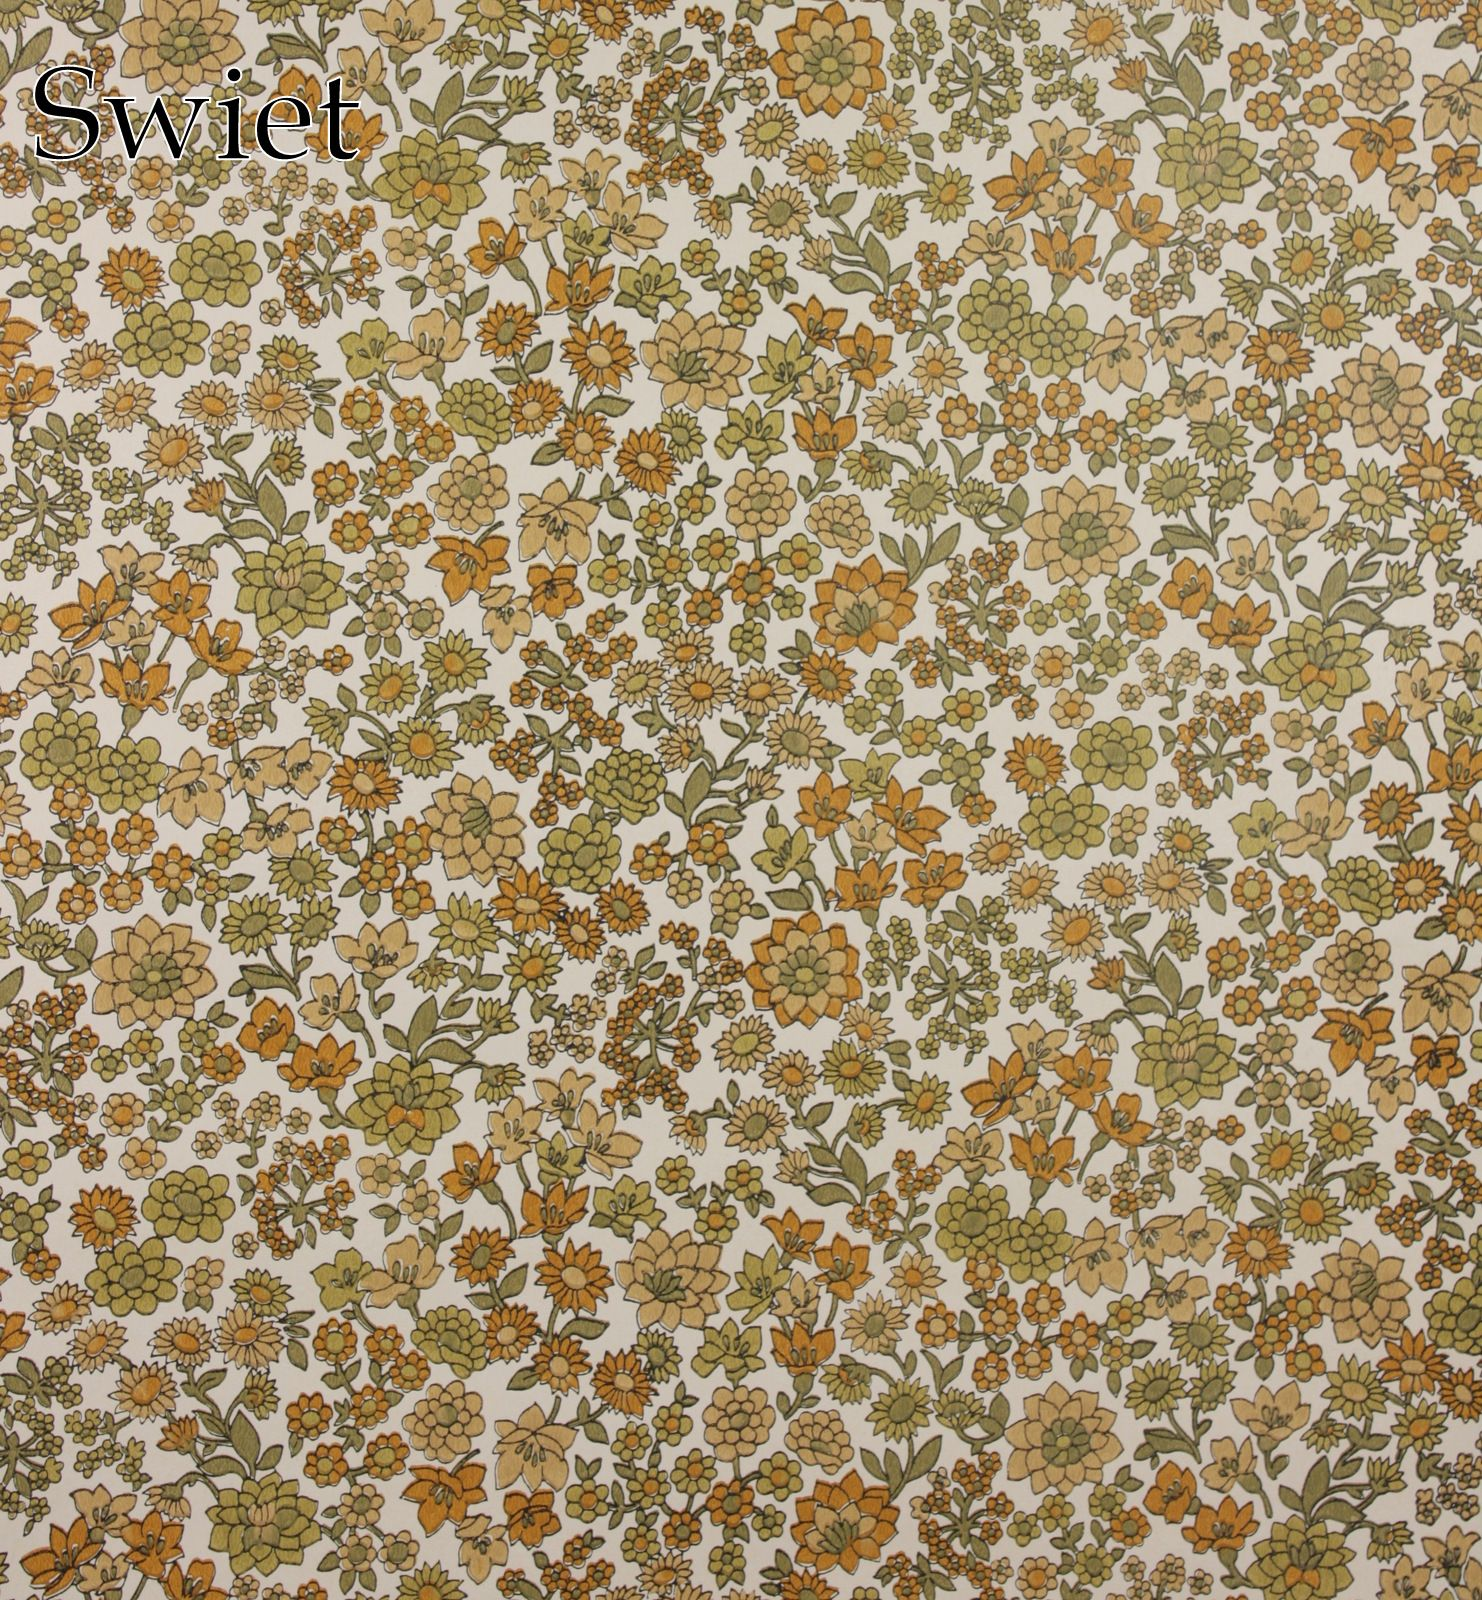 Swiet Behang Swiet Behang Vintage Oud Retro Barok Behang Wallpaper